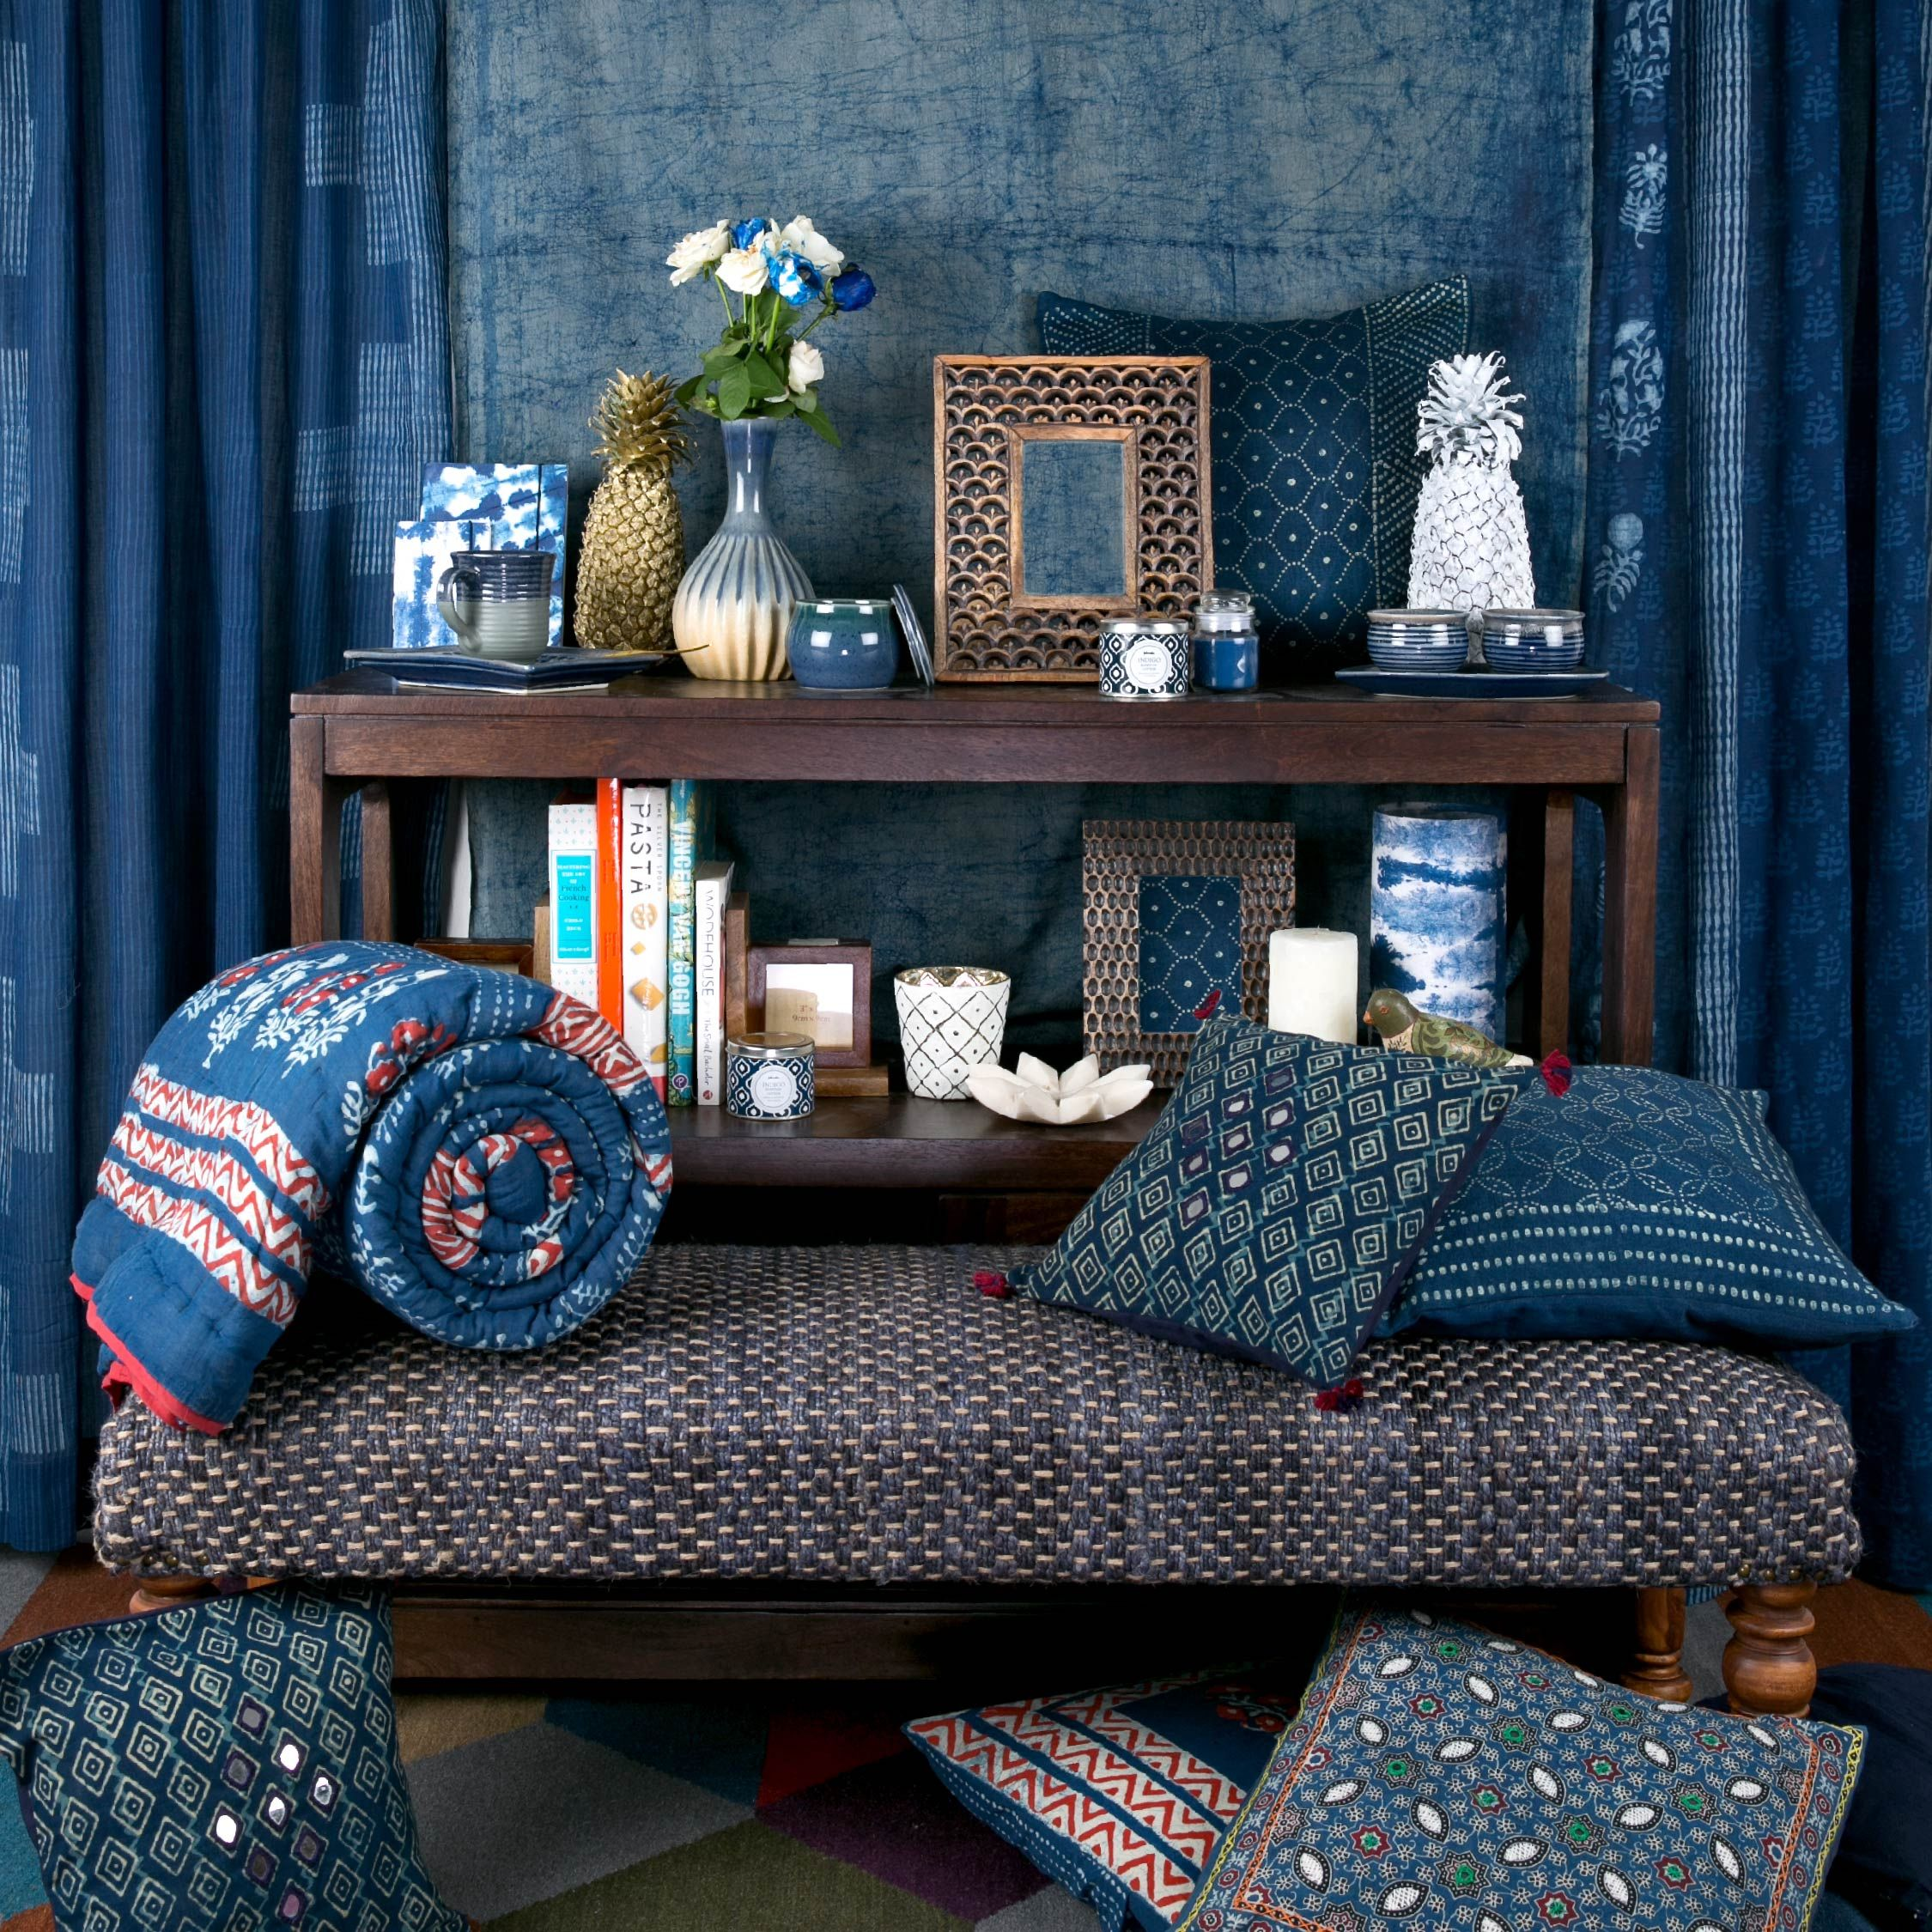 Sofa Upholstery Thrissur Indigo Home Lifestyle Cushions Quilts Bedlinen Accessories